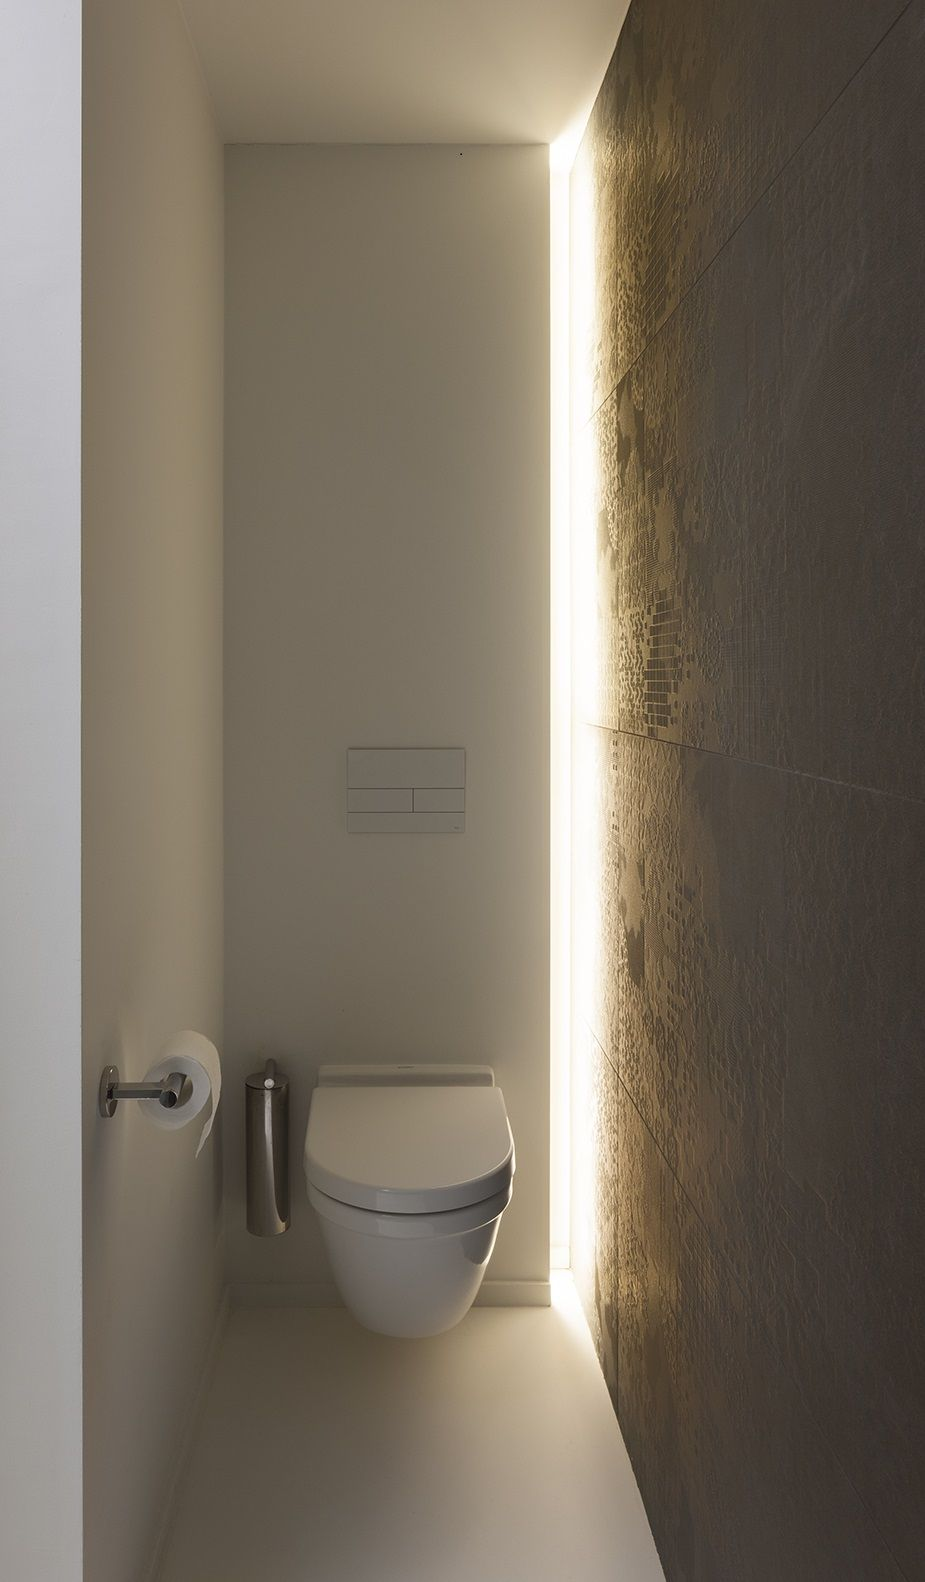 Indirect lighting design by architectenburo anja vissers for Indirecte verlichting toilet